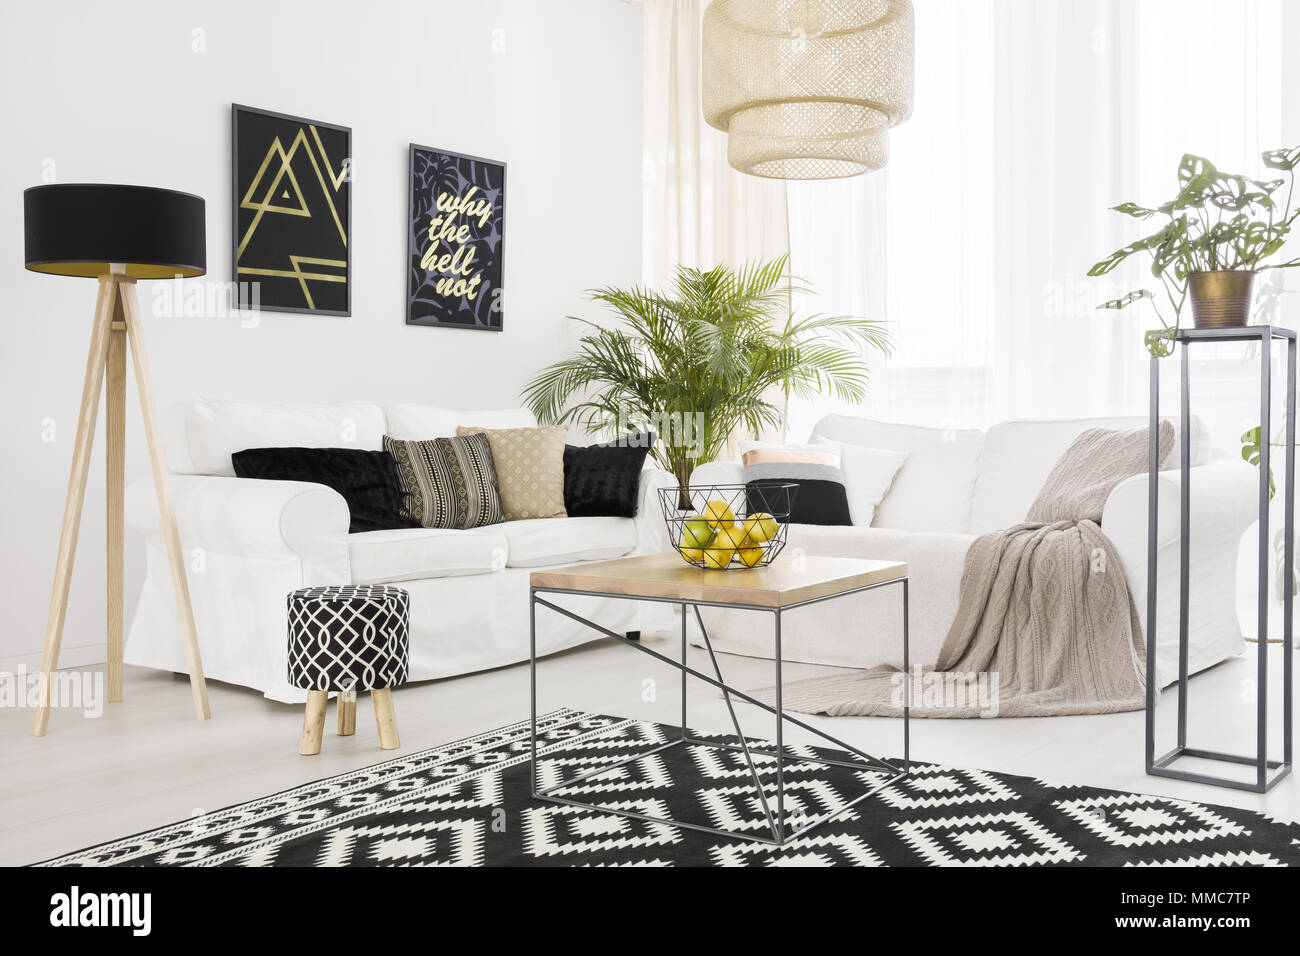 Salon Noir Et Blanc black and white living room with sofa and pattern carpet